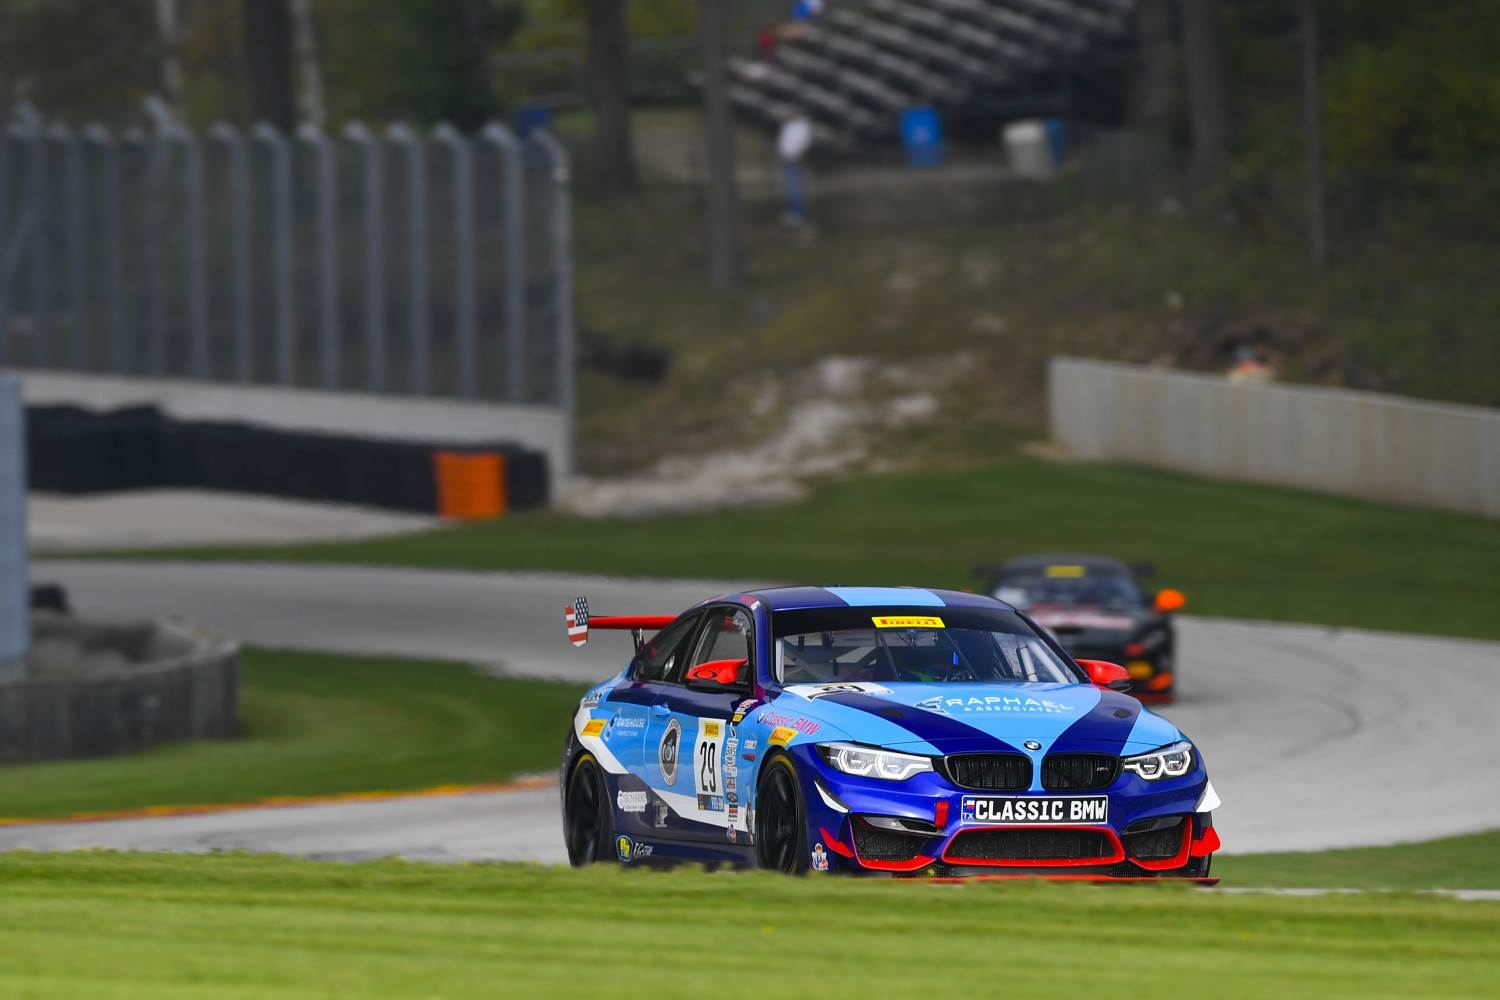 #29 BMW M4 GT4 of Justin Raphael and Stevan McAleer with Classic BMW  Road America World Challenge America , Elkhart Lake WI | Gavin Baker/SRO